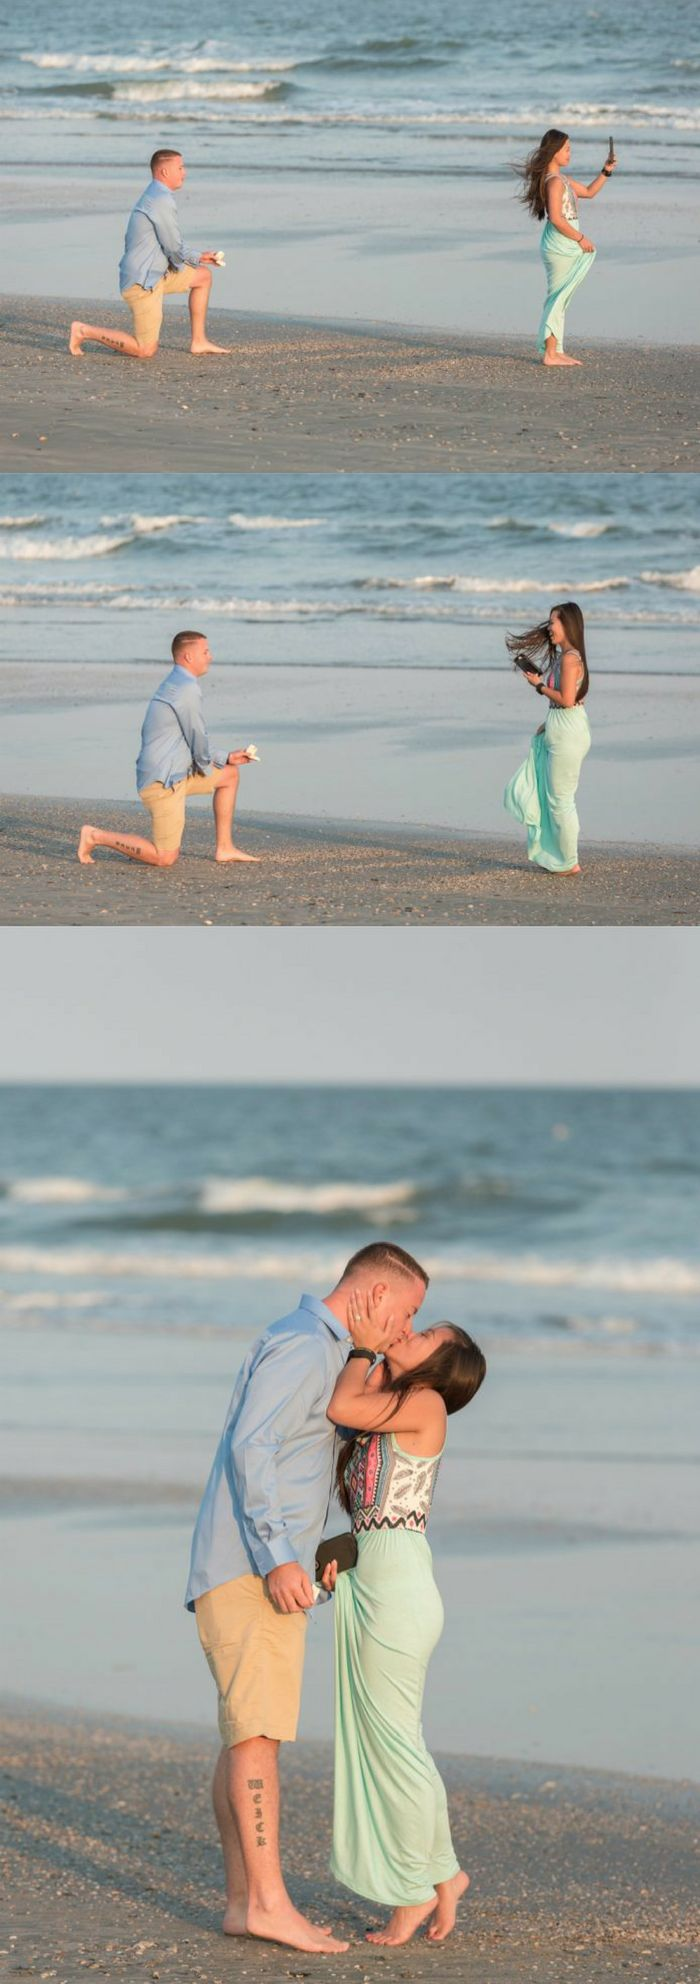 While she was taking a picture of the sunset, he was getting on one knee to propose.